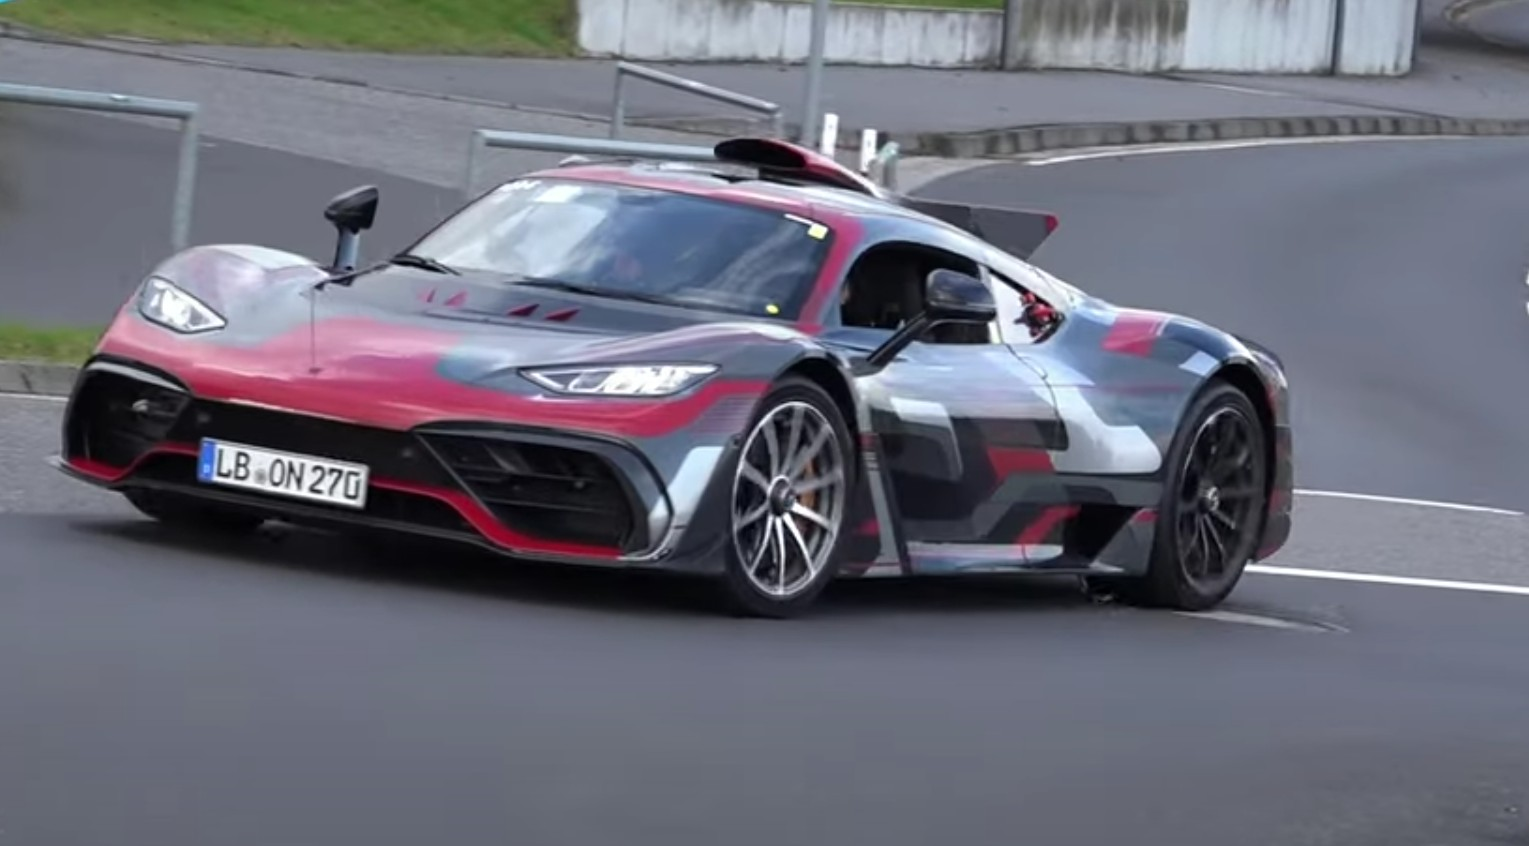 mercedes-amg-project-one-prototype-spied-testing-on-regular-streets